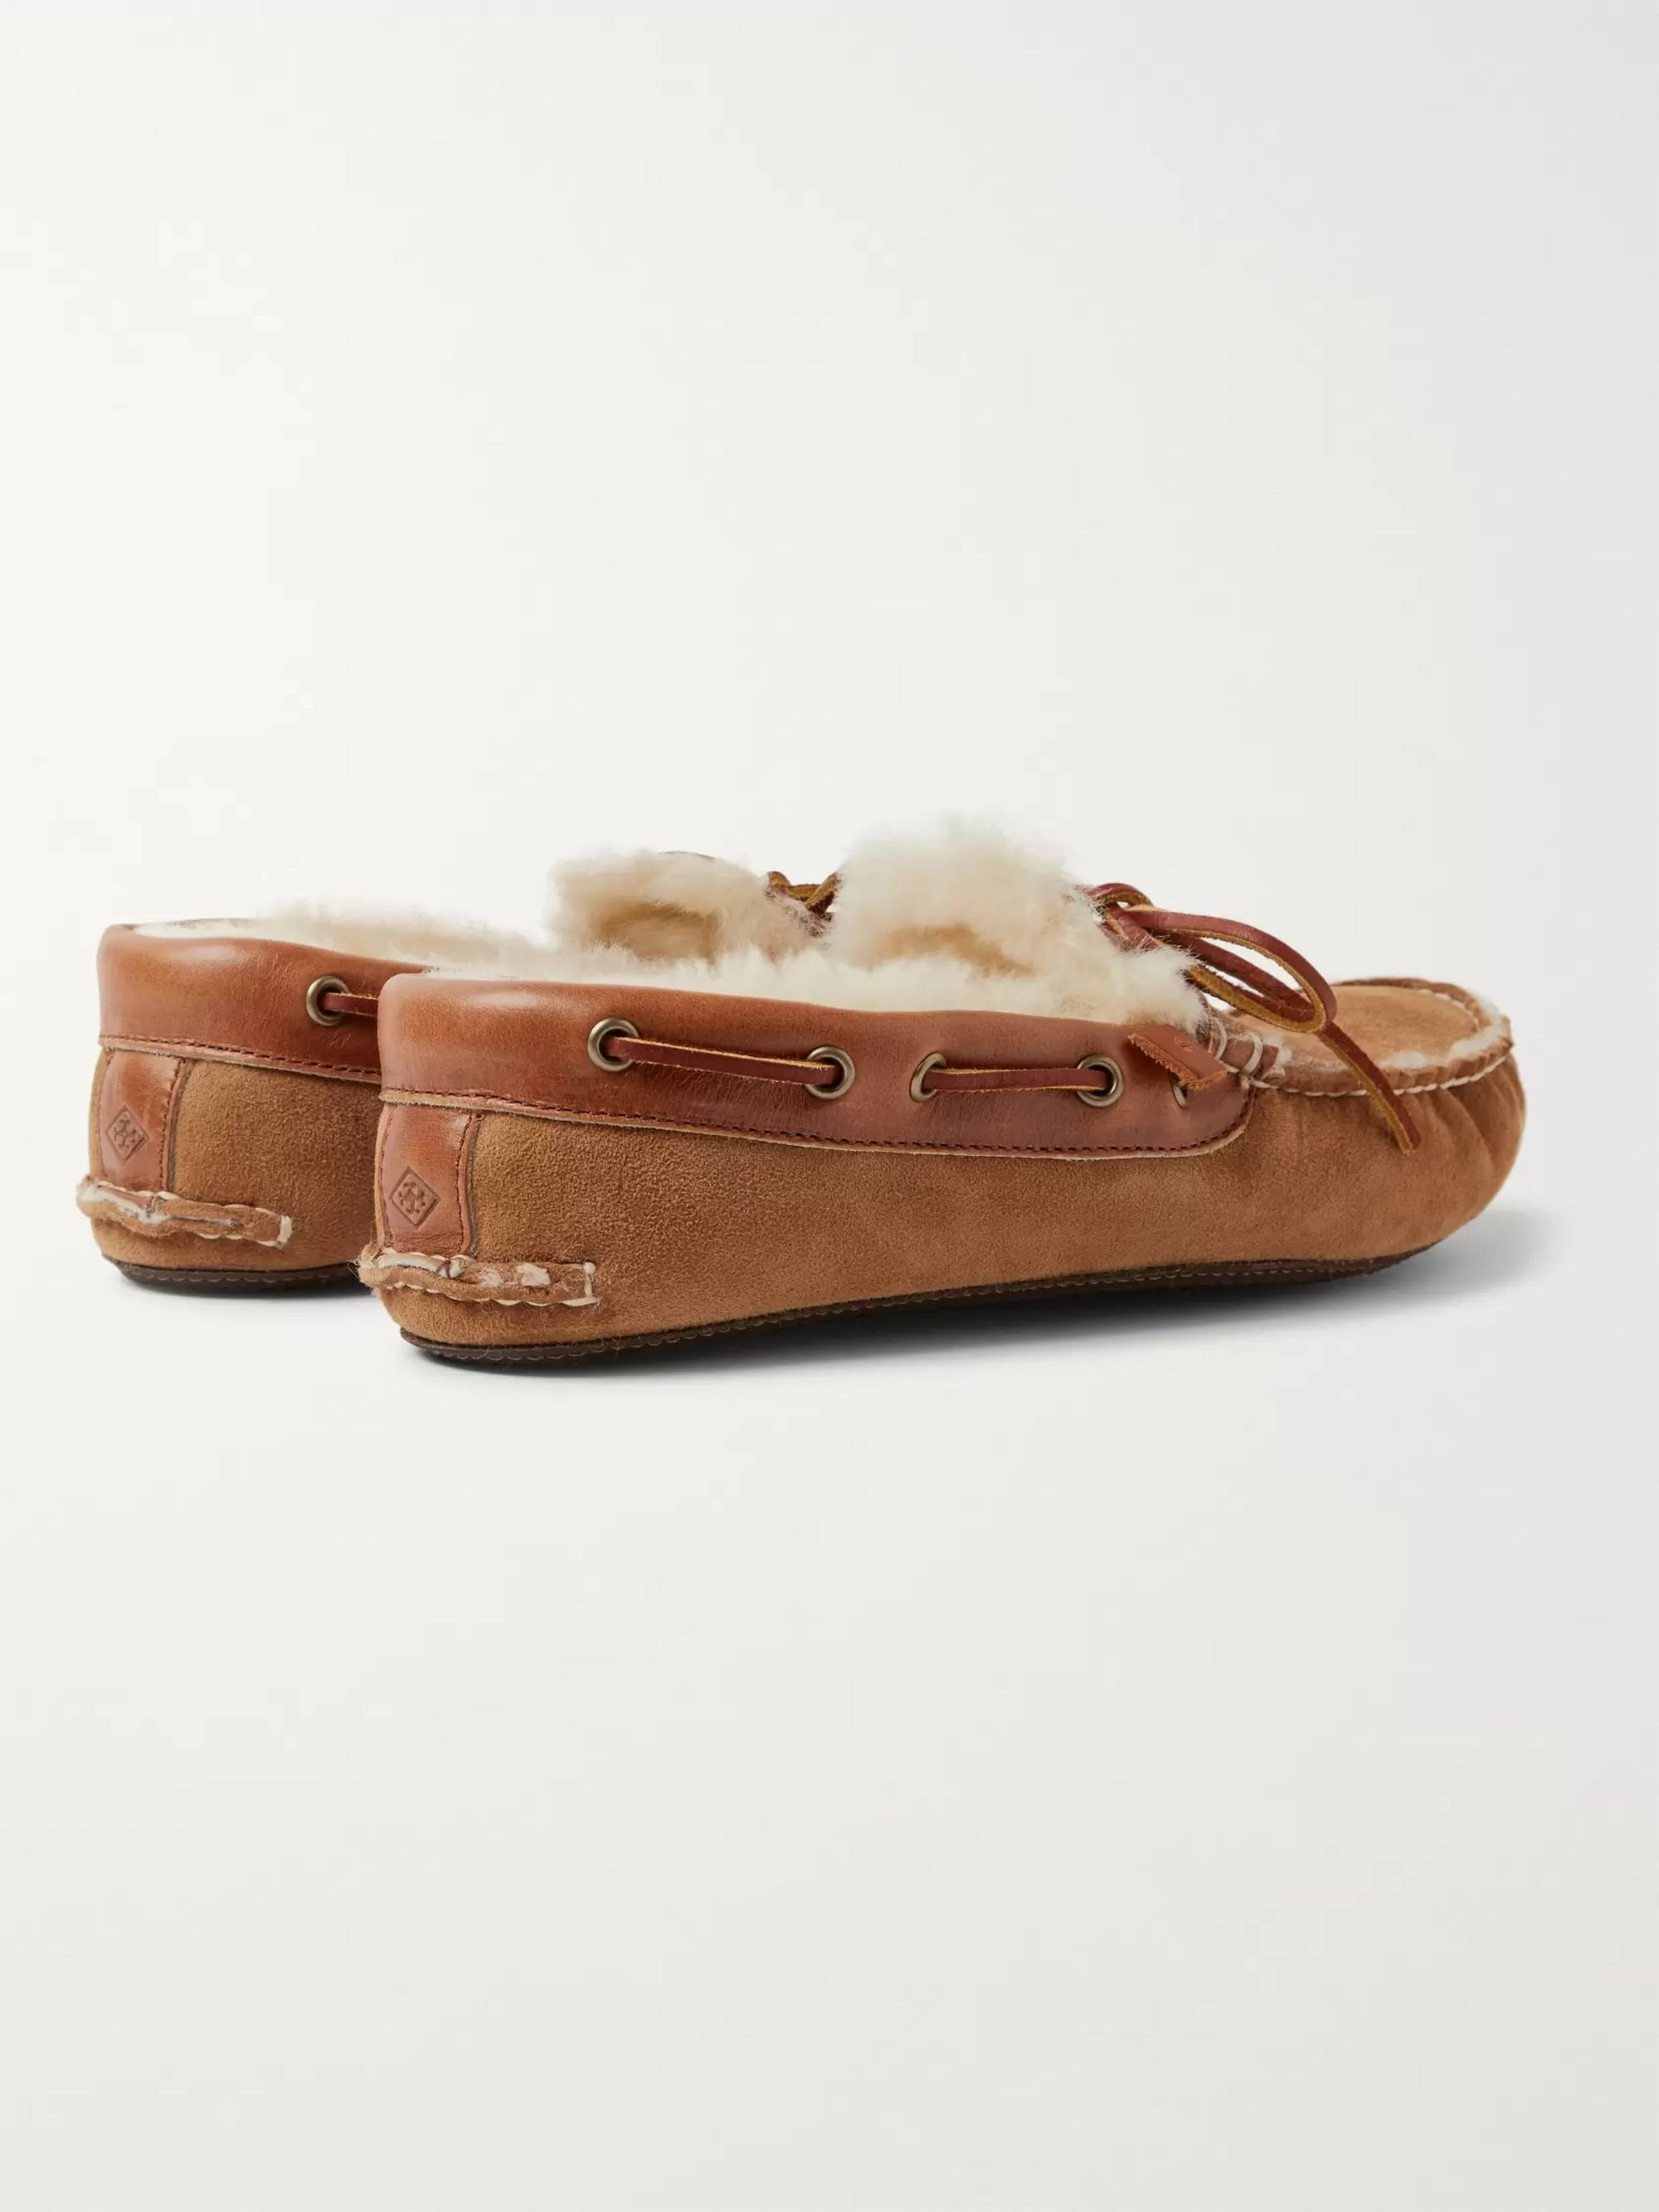 Quoddy Fireside Leather-Trimmed Shearling-Lined Suede Slippers